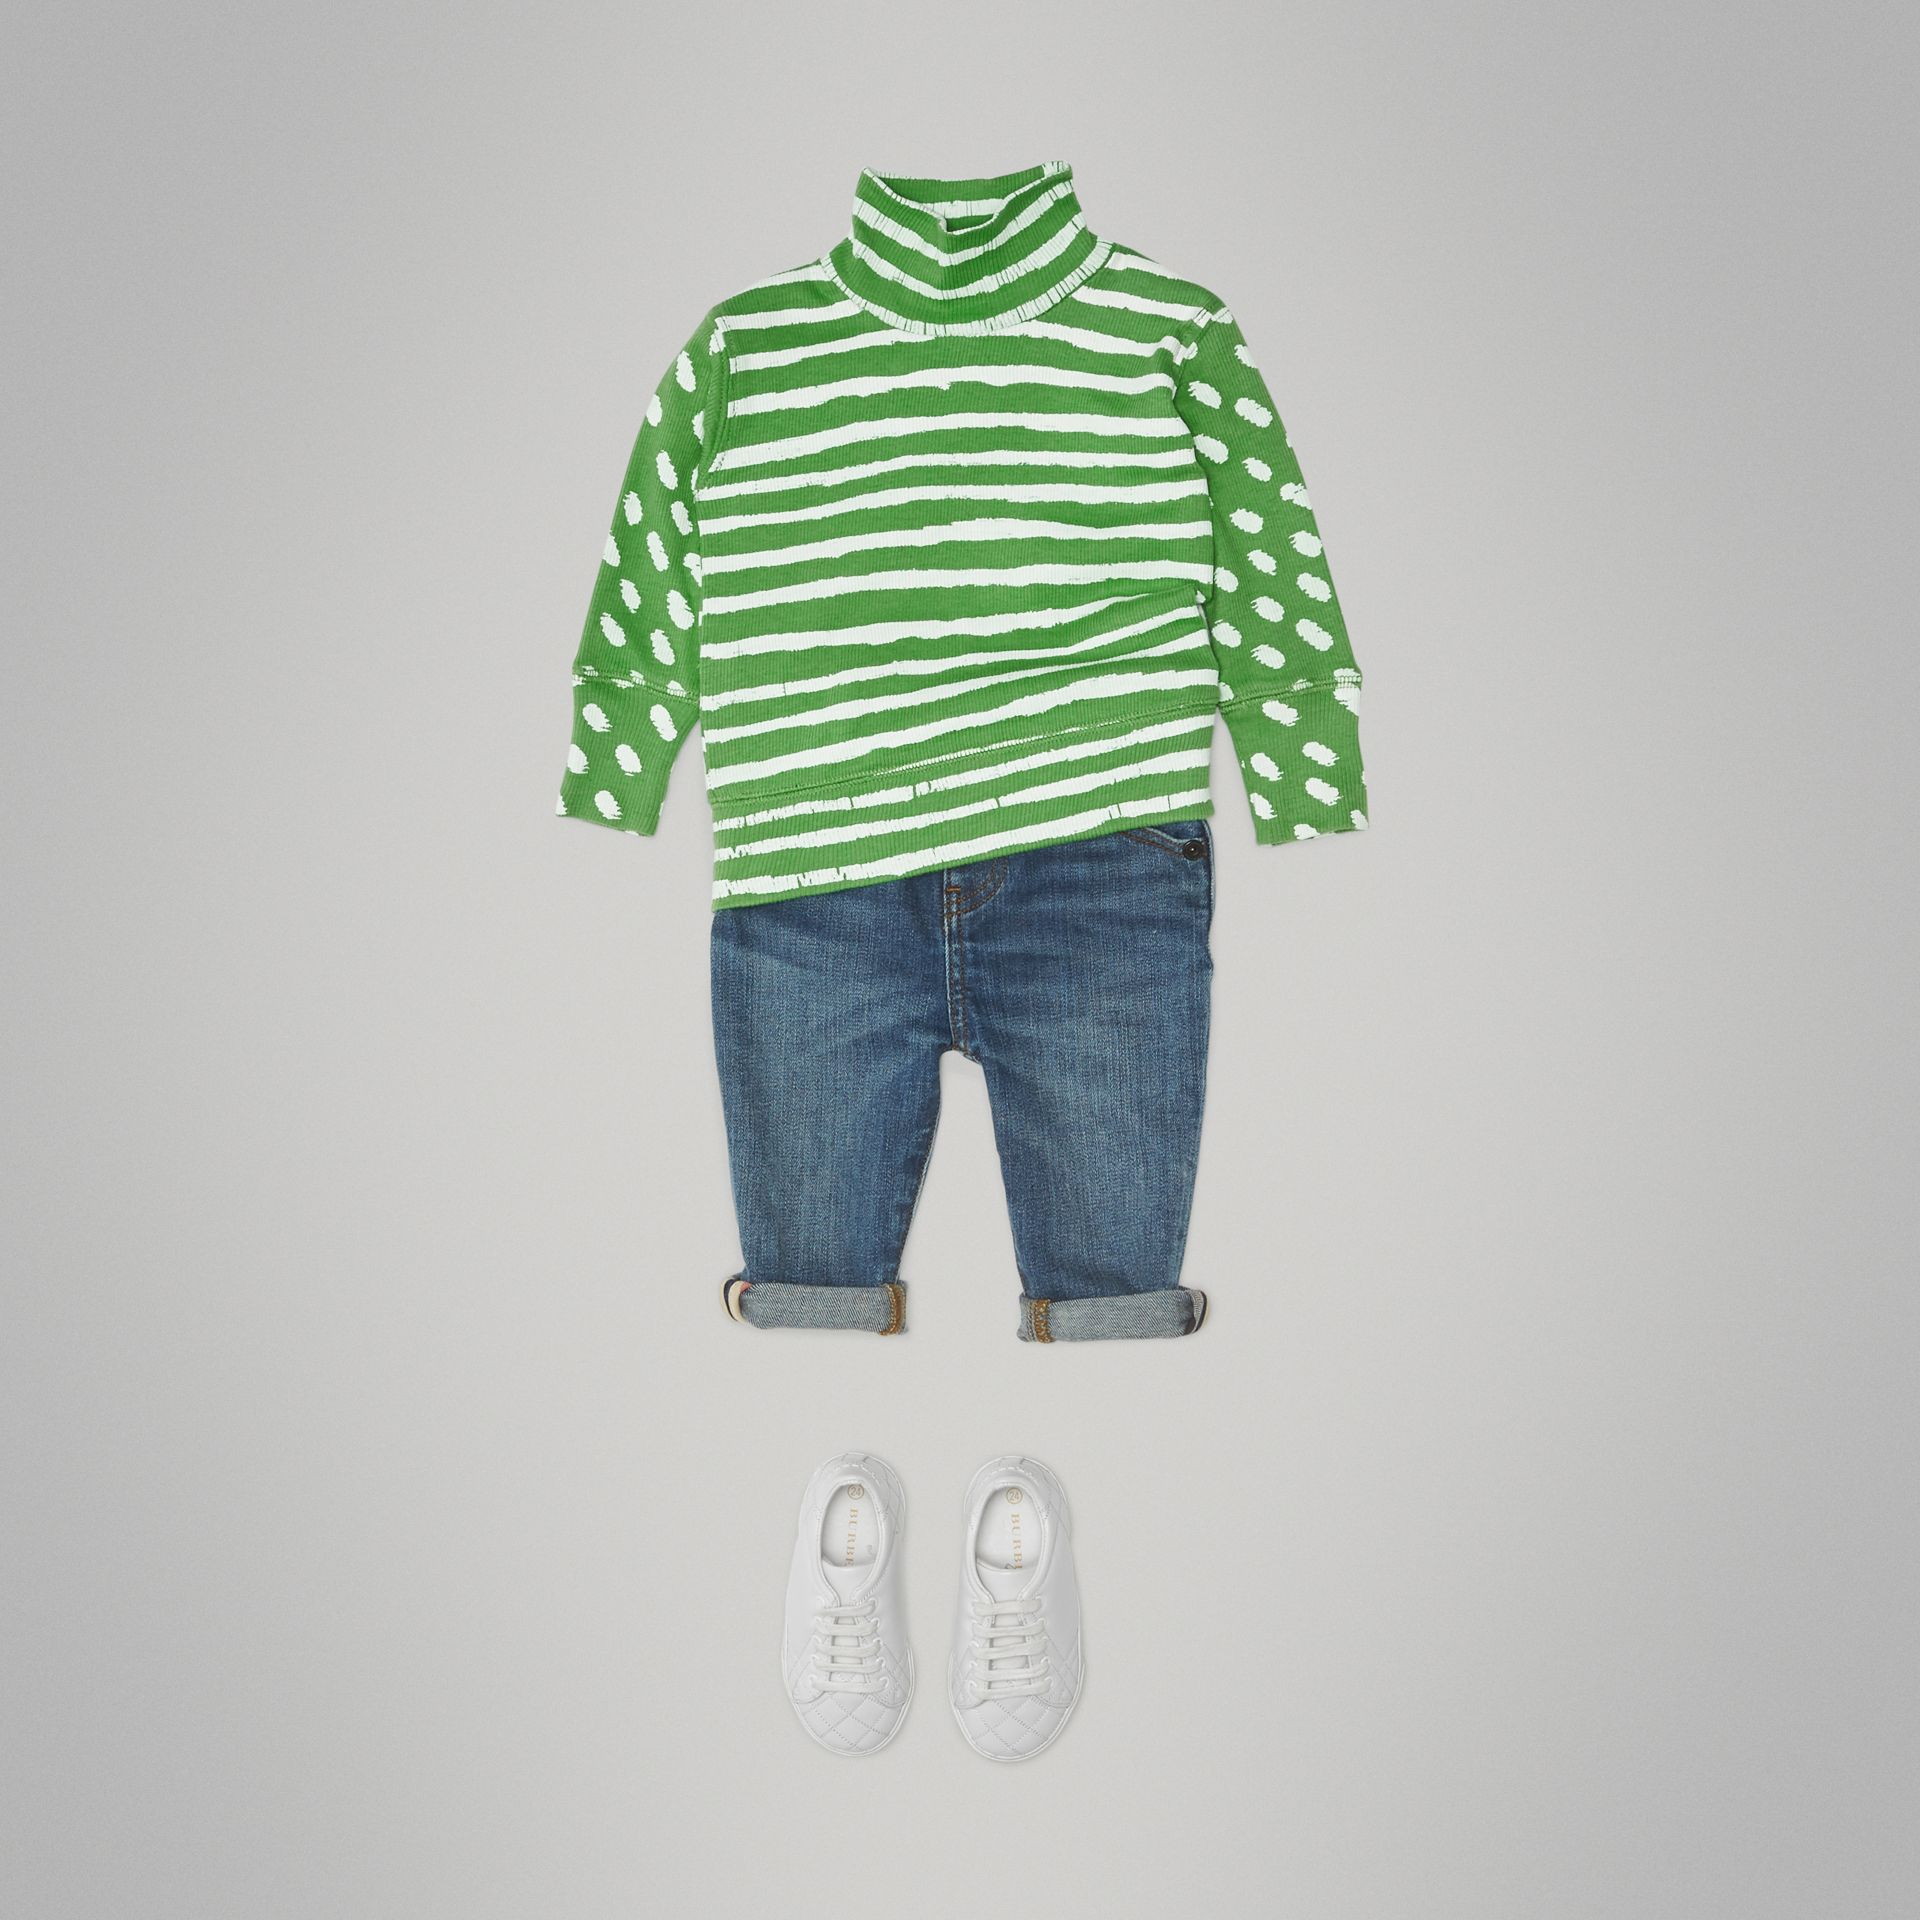 Roll-neck Spot and Stripe Print Cotton Top in Bright Green - Children | Burberry United States - gallery image 2